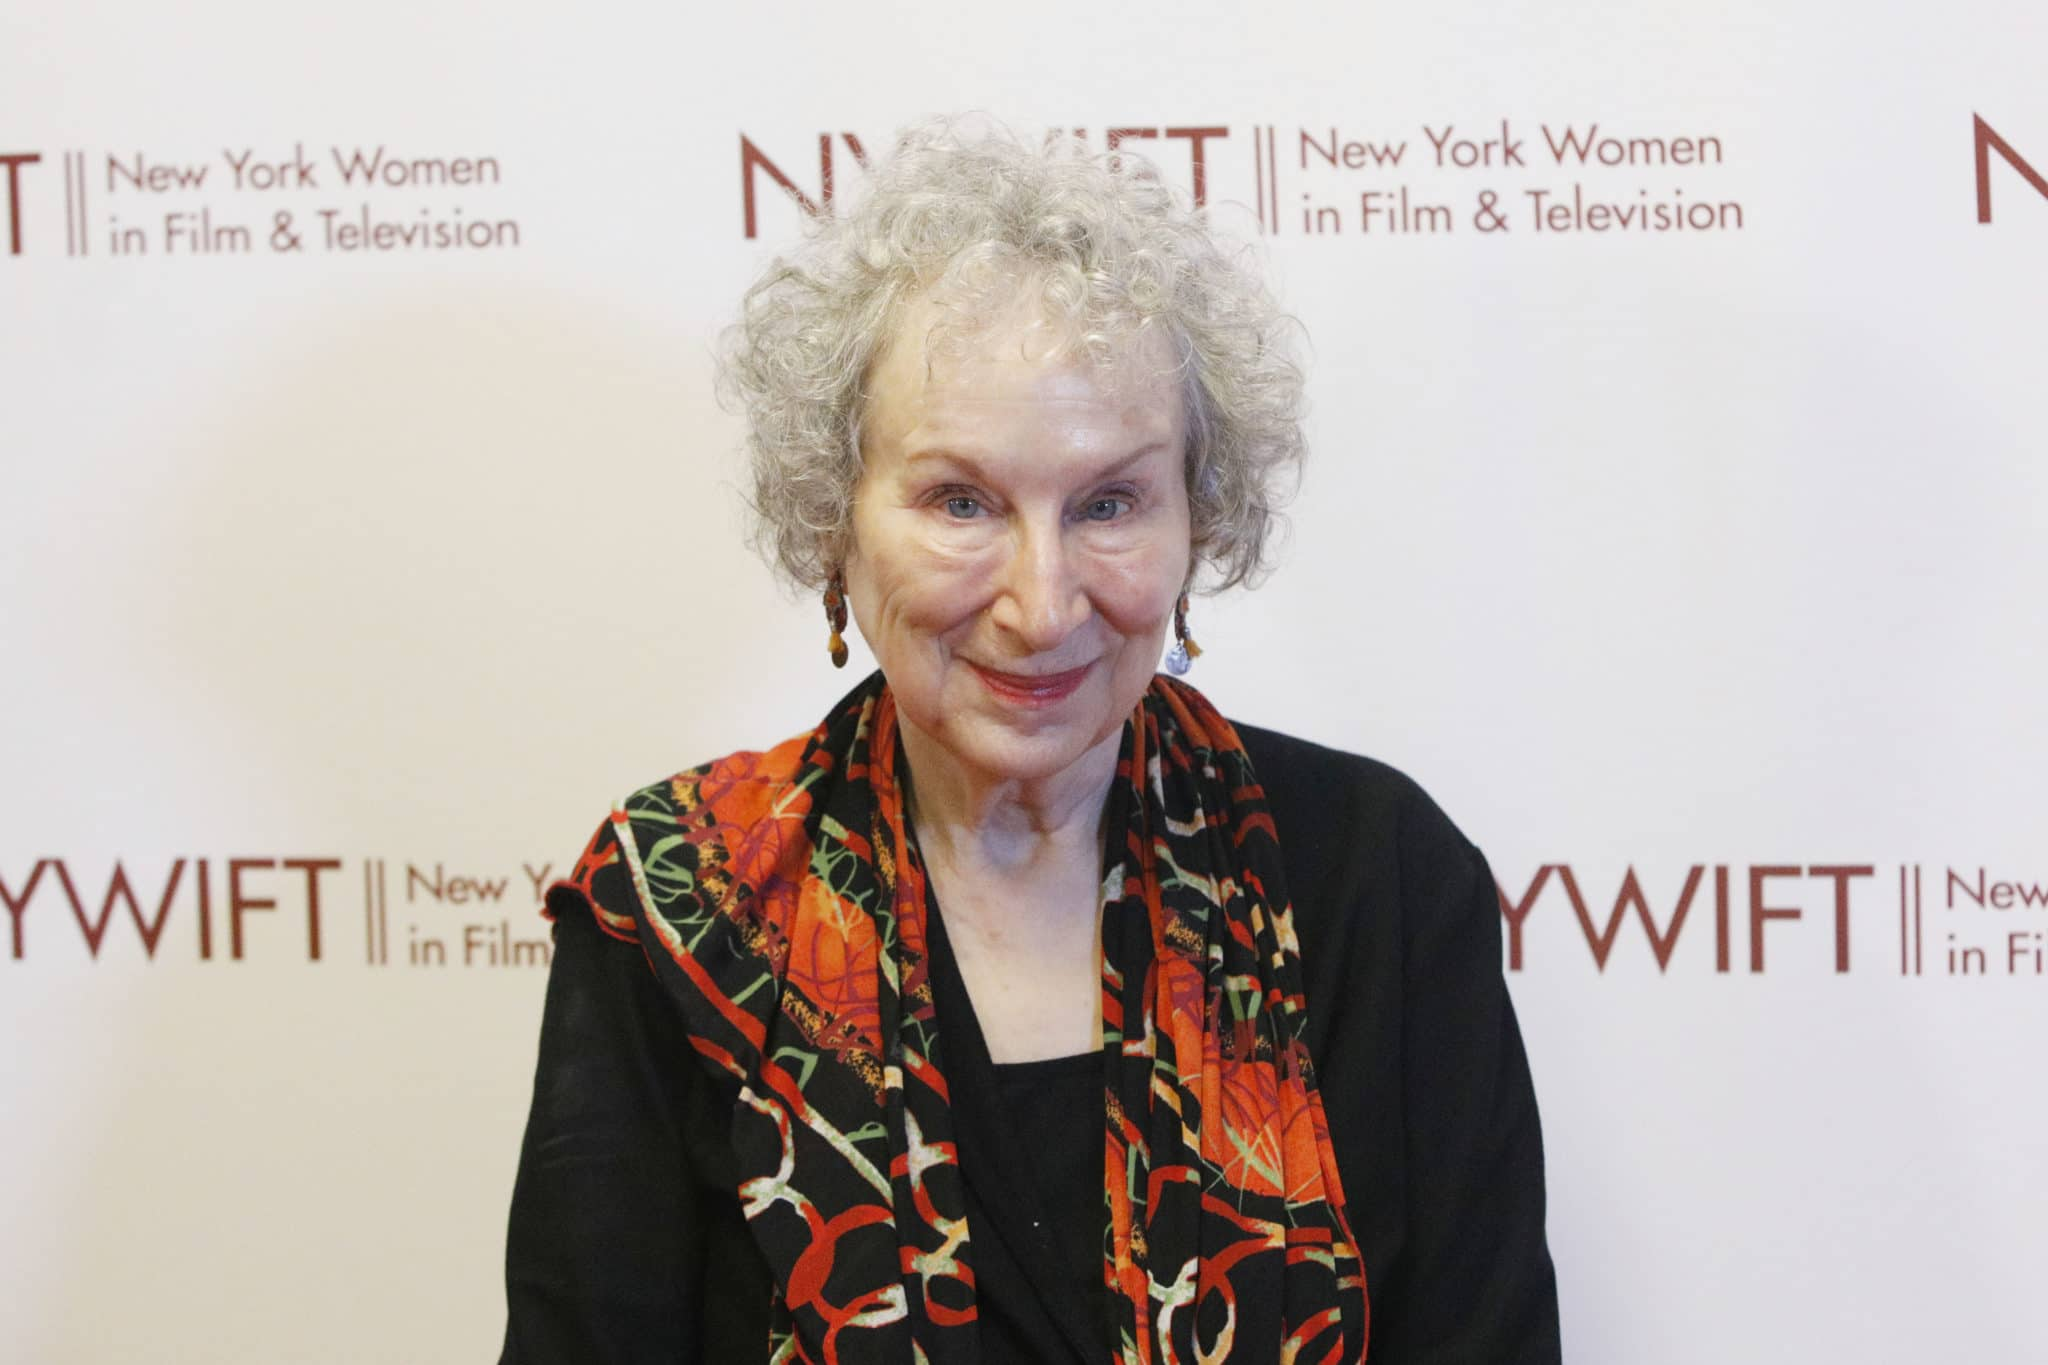 Margaret Atwood trans rights